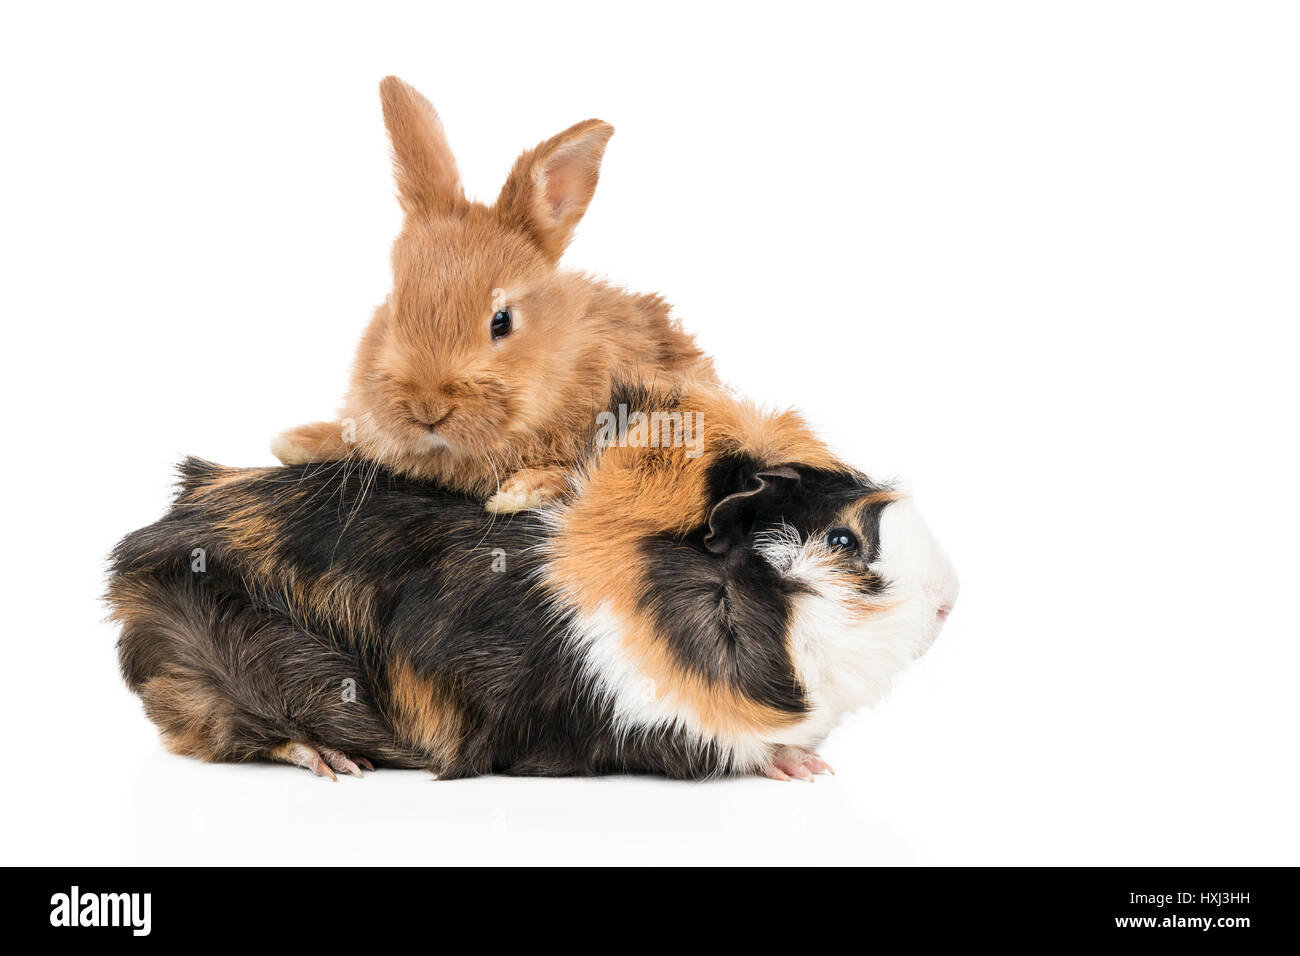 Beautiful redheaded rabbit climbed a multicolored guinea pig isolated on a white background - Stock Image